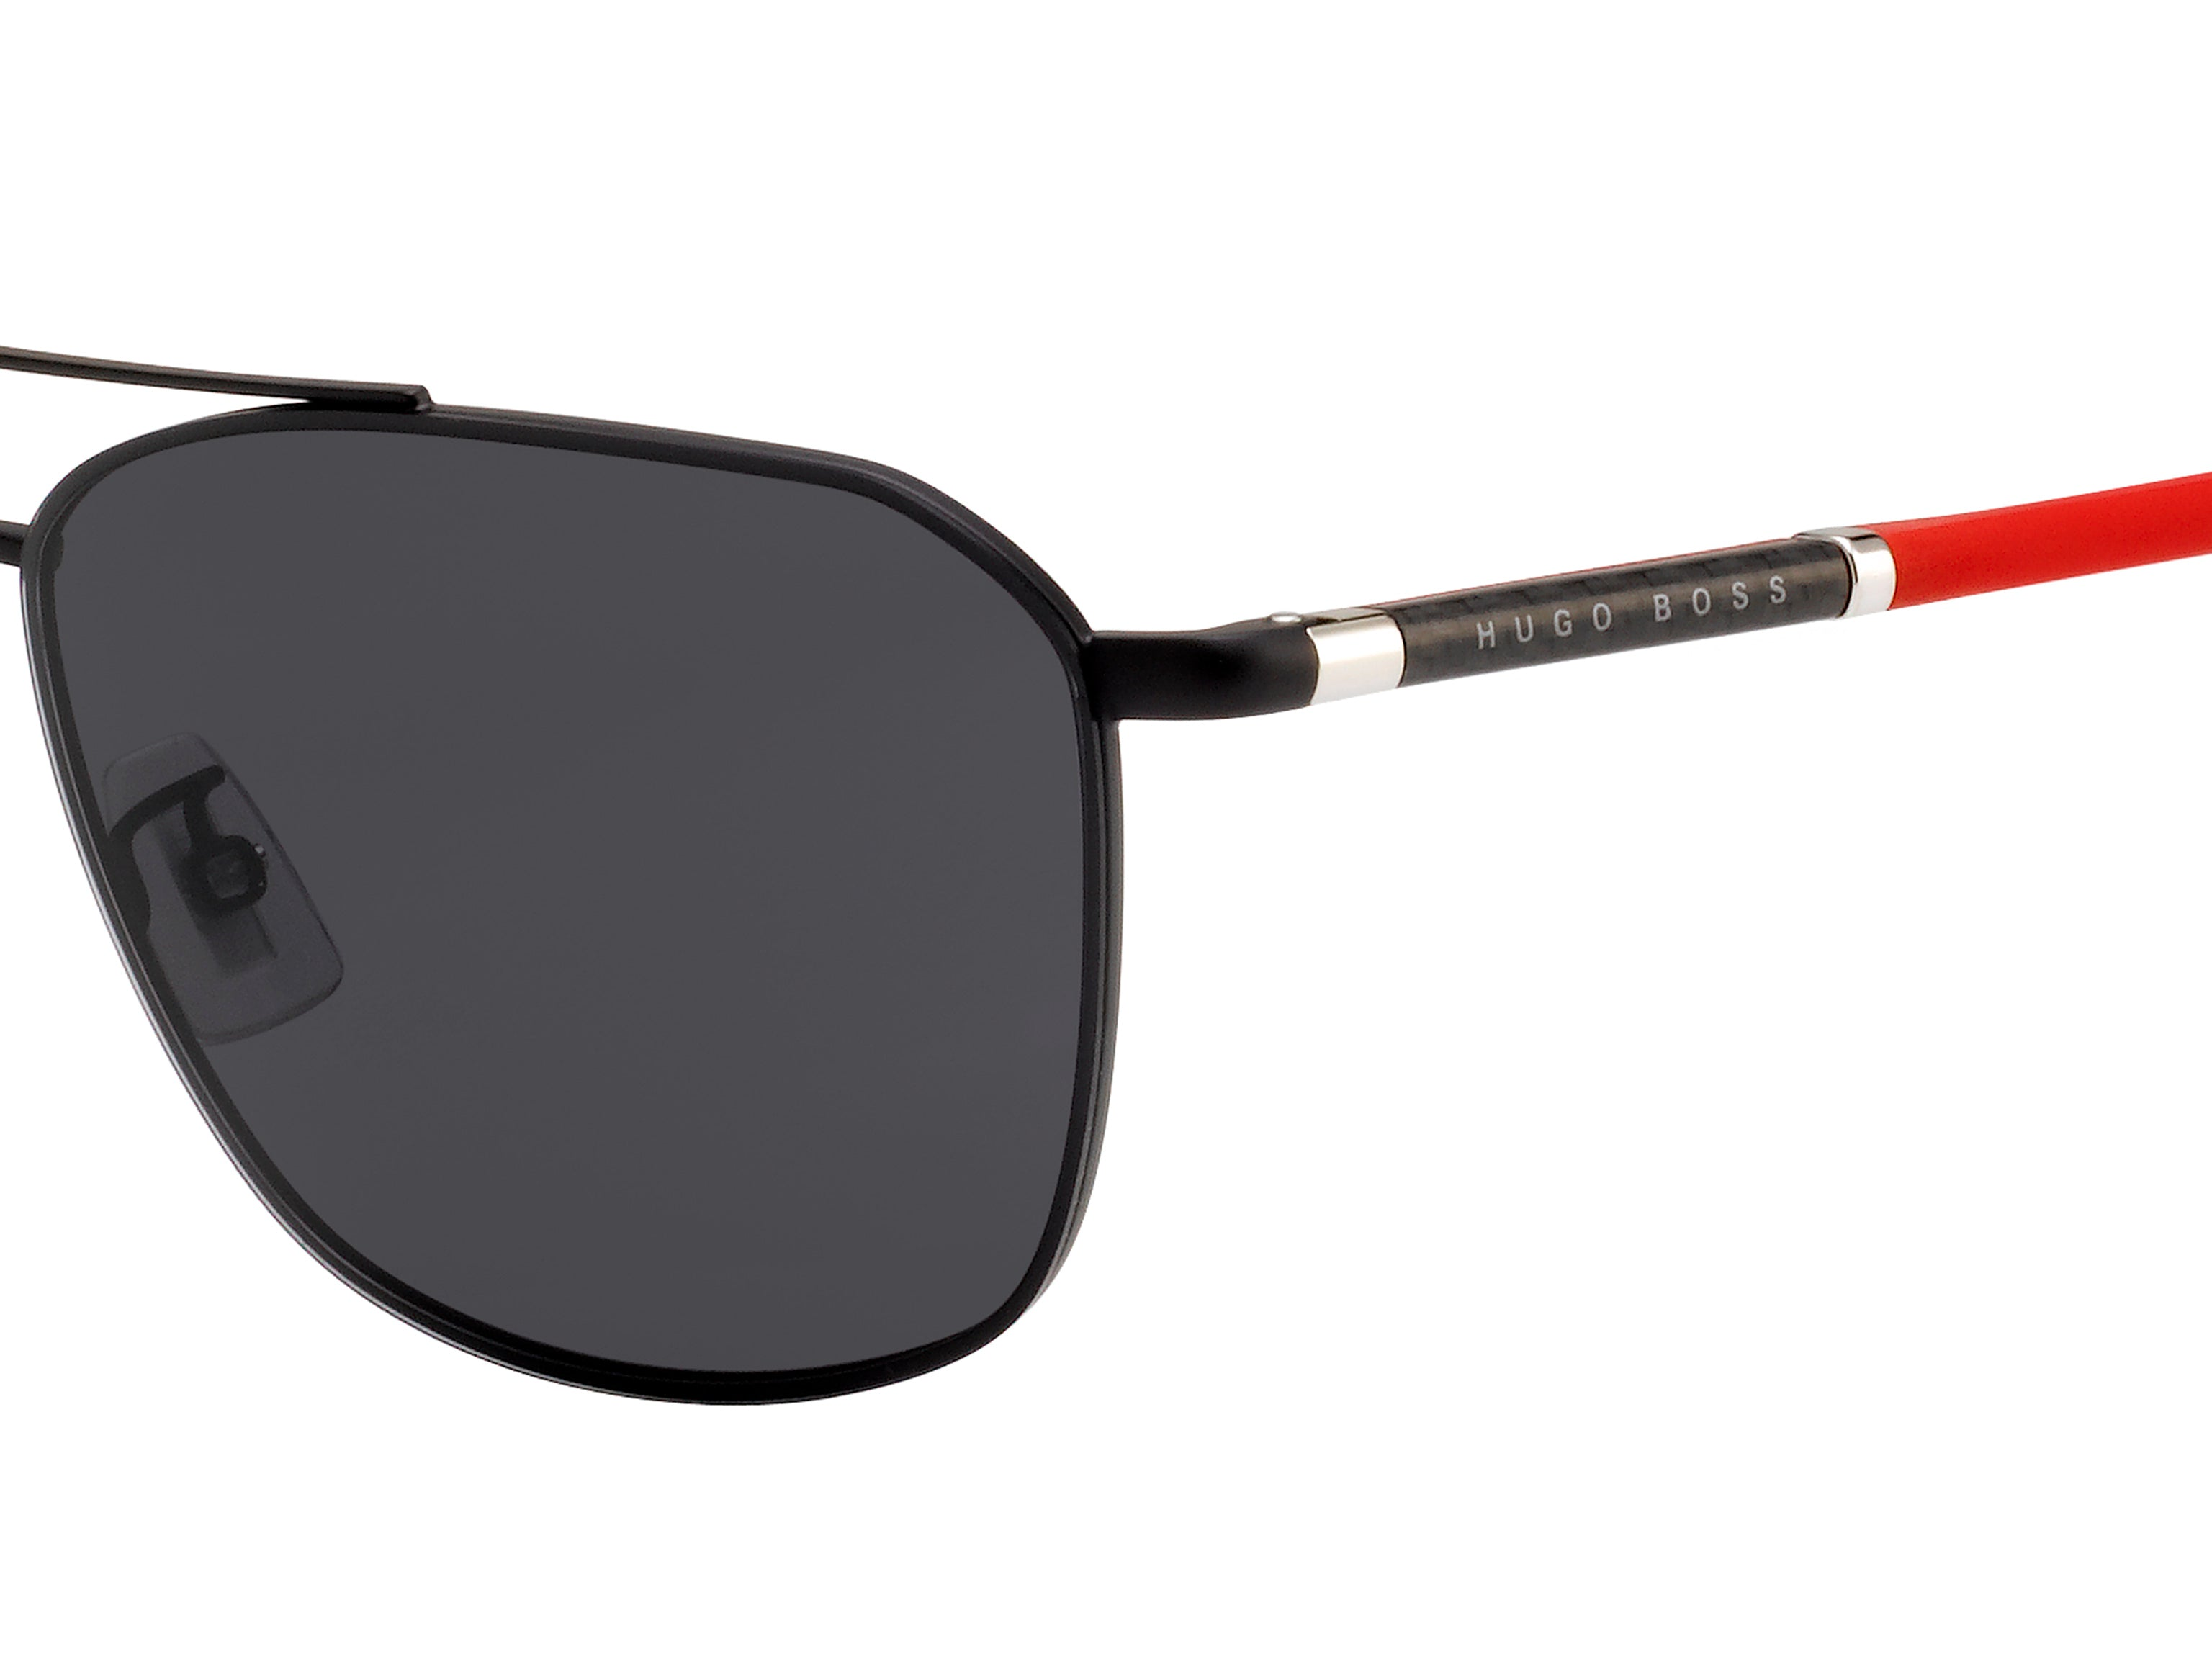 HUGO BOSS 1103/F/S 003 IR